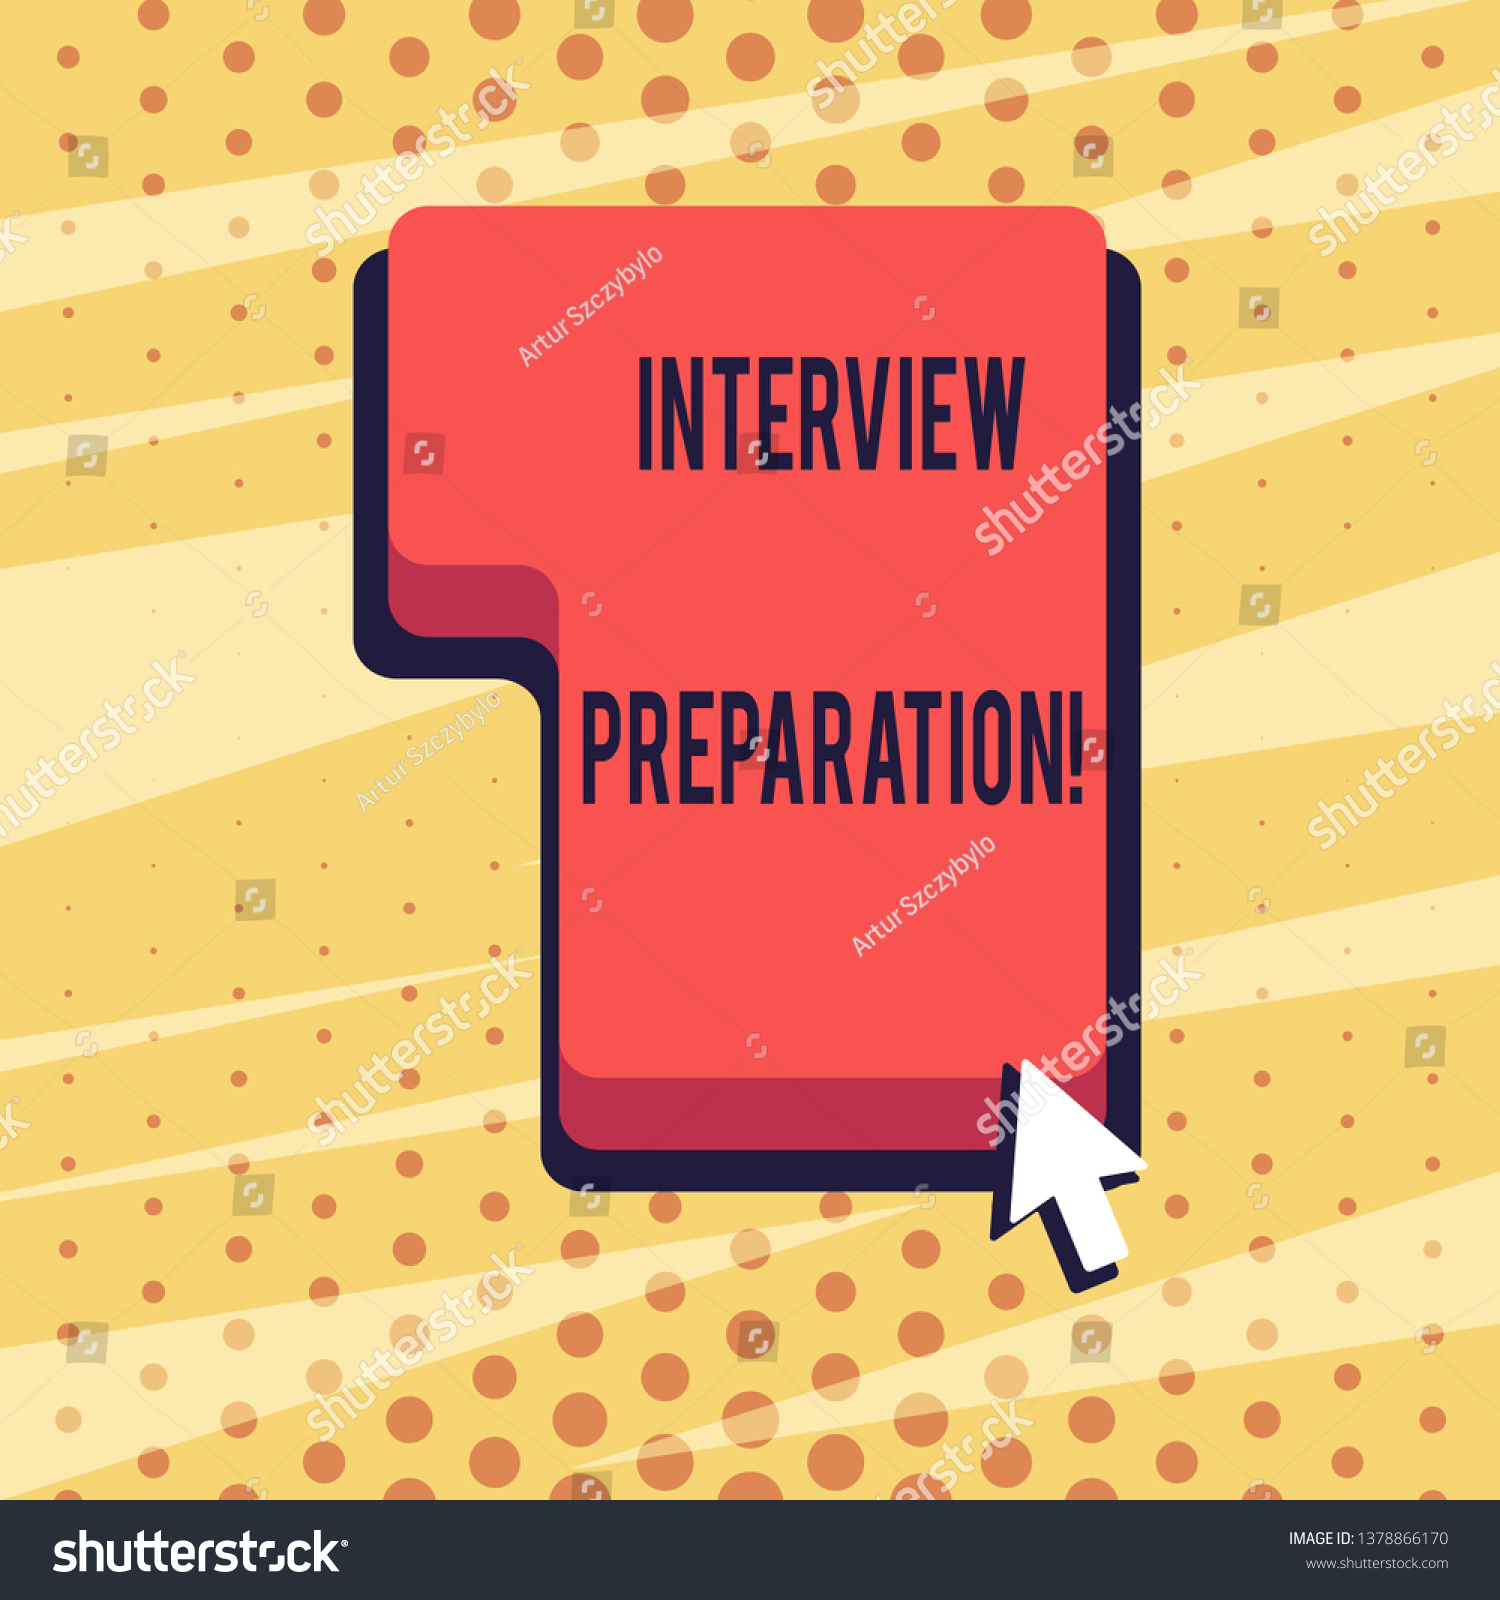 Handwriting Text Interview Preparation Concept Meaning Stock